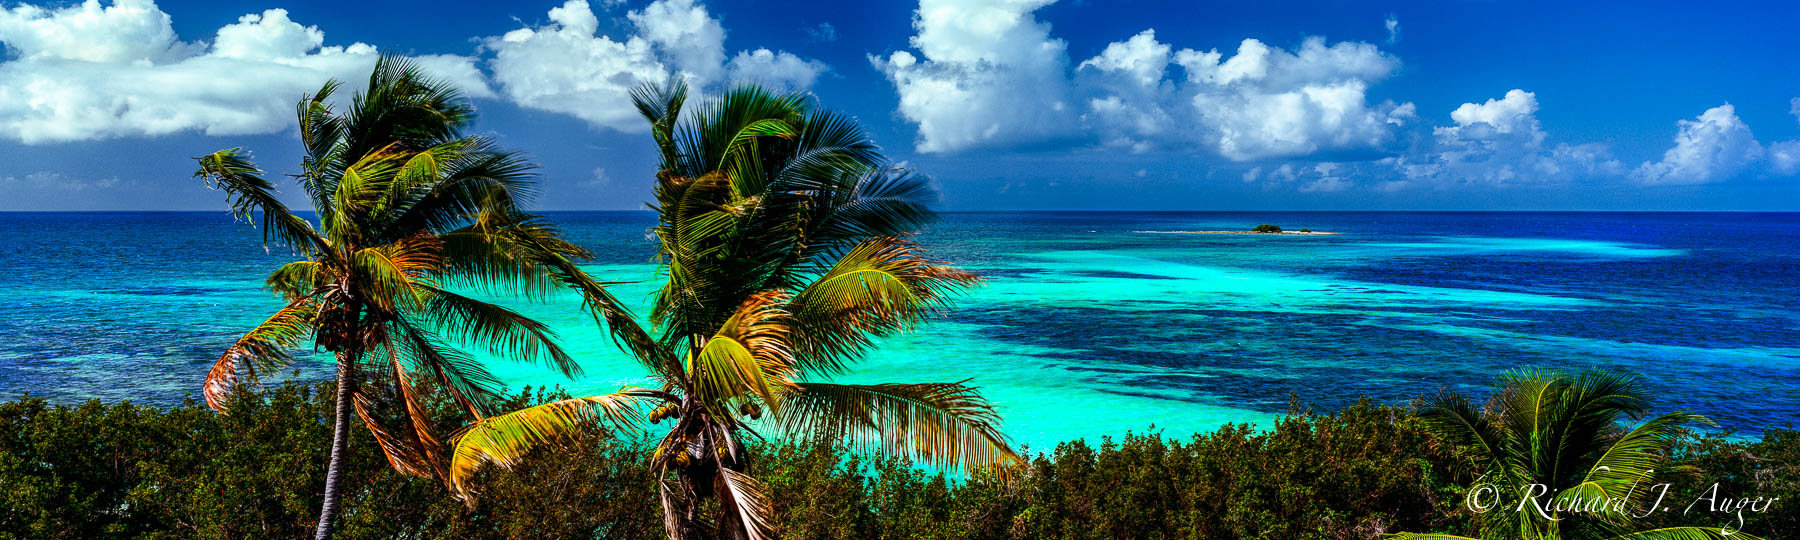 Bahia Honda State Park, Florida Keys, Tropical, Florescent Greens, Blues, Palm Trees, Ocean, Sky, Panorama, Photograph, Photographer